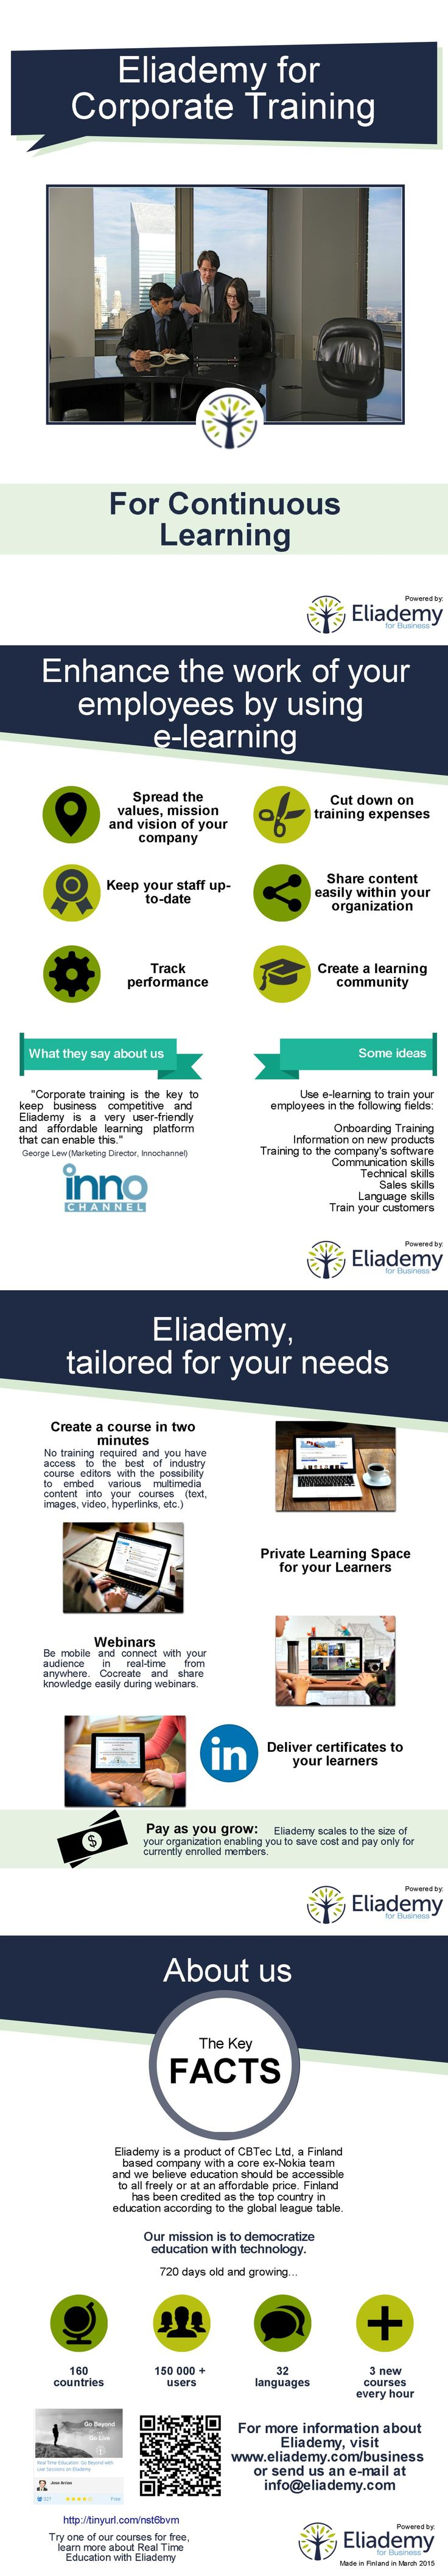 Eliademy for Corporate Training #brochure #elearning #training #HR #HumanResources #LMS